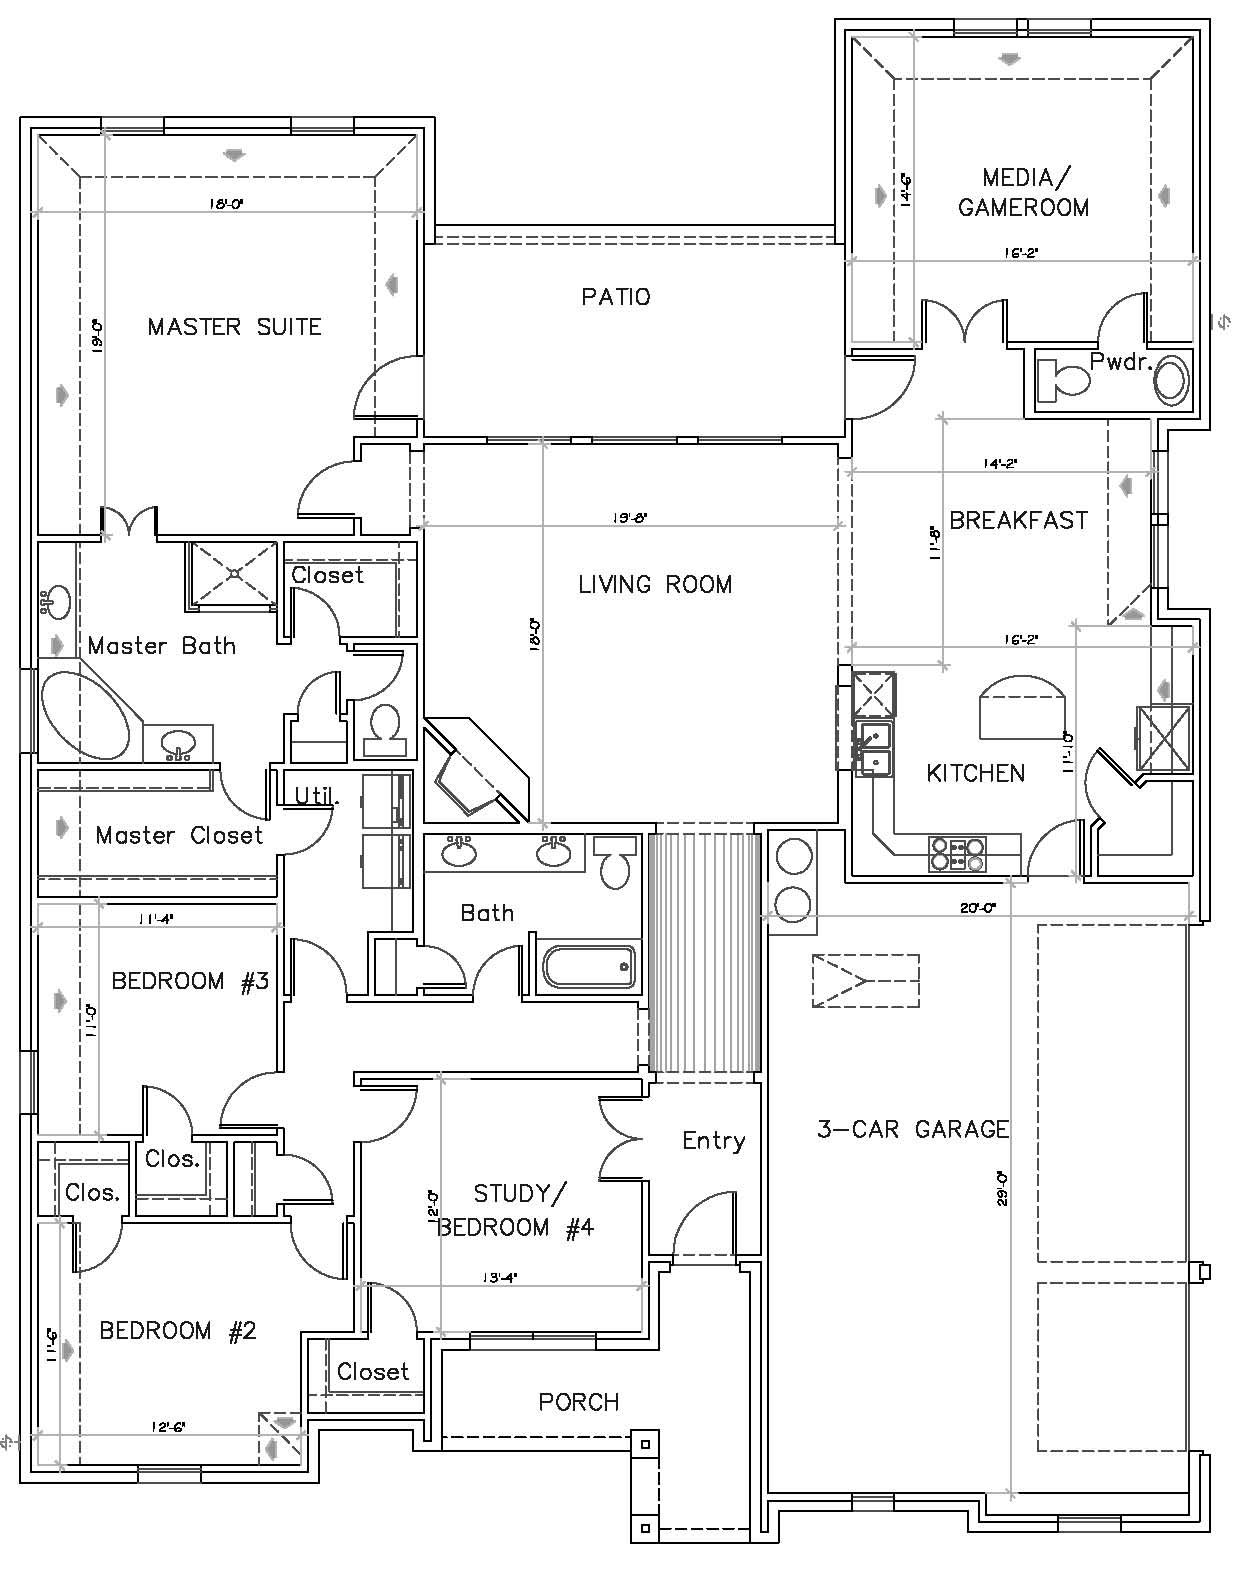 southfork ranch house plans google search southfork